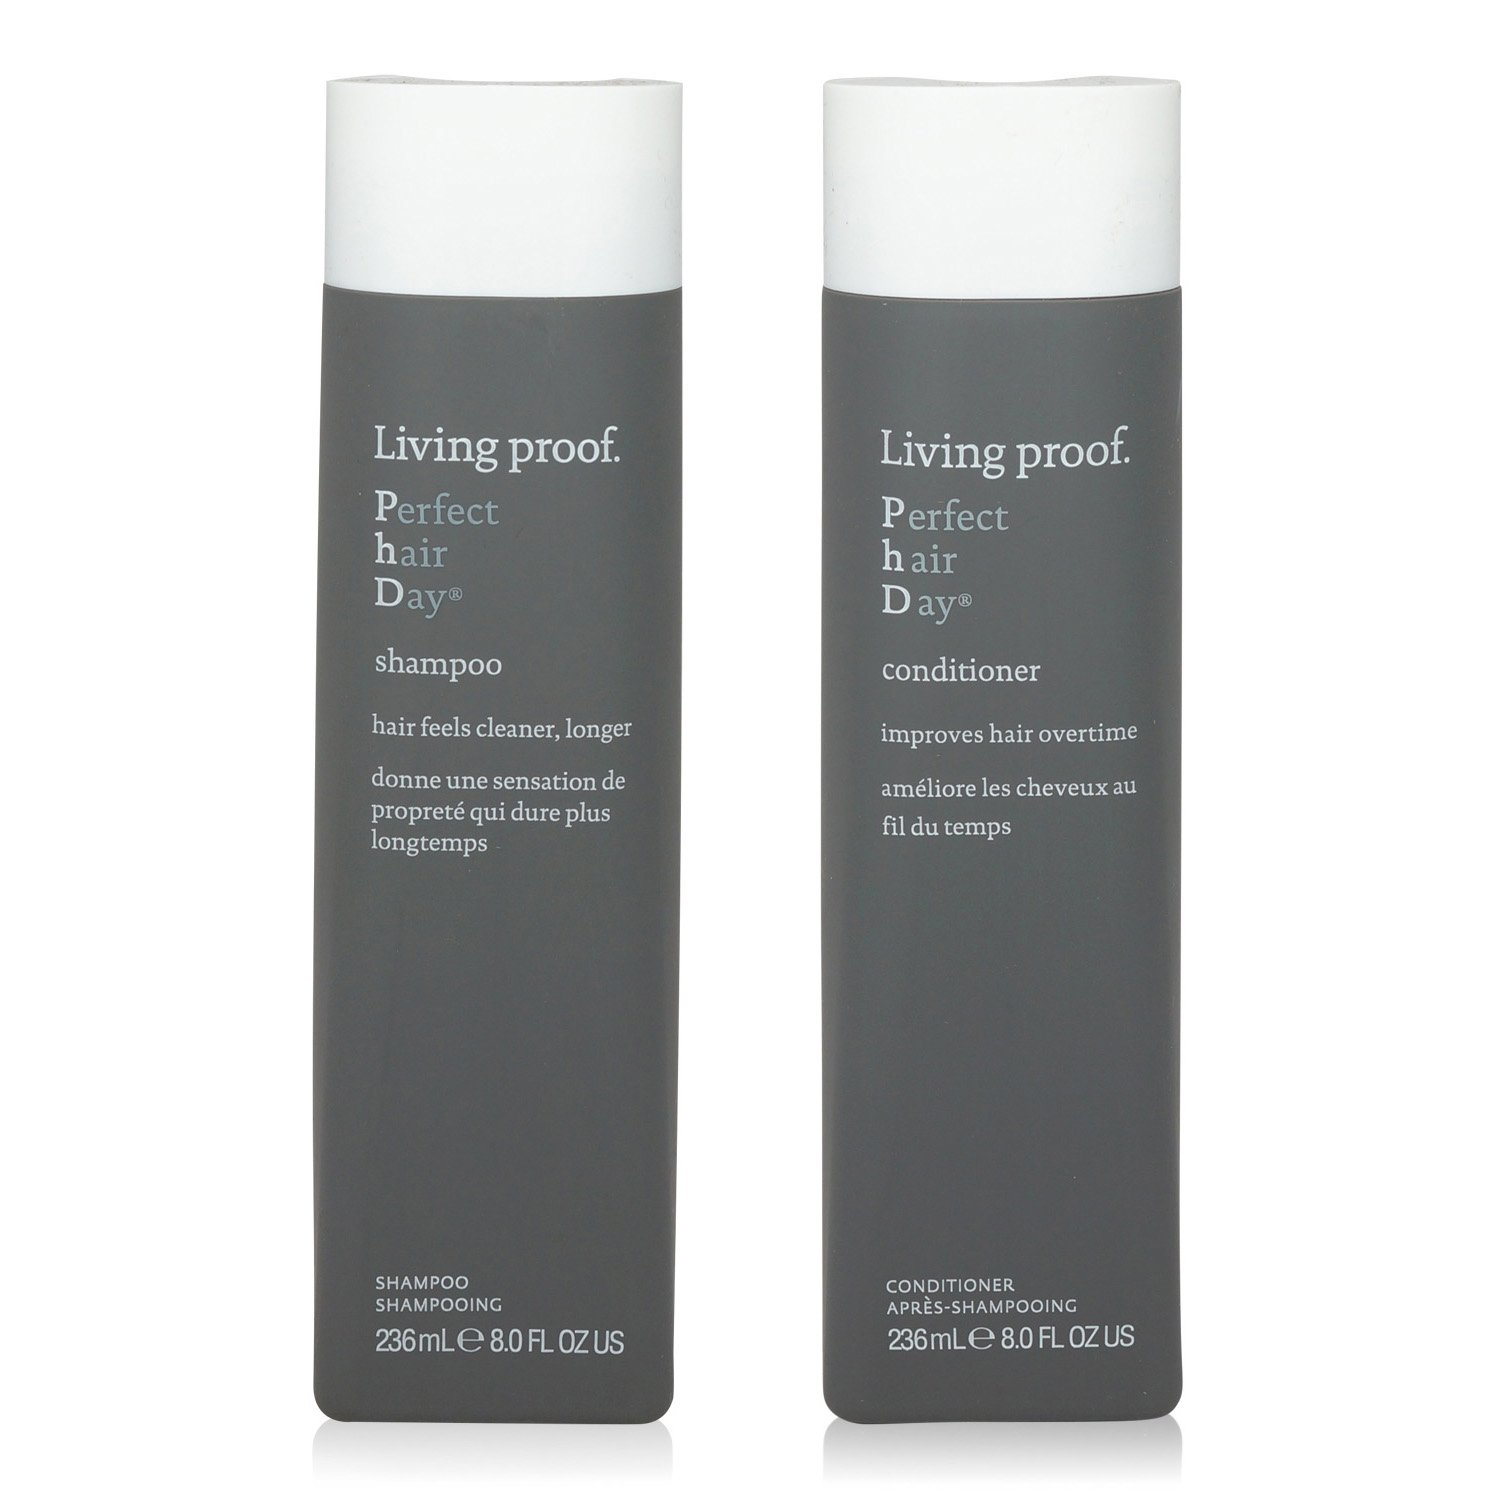 Living Proof Perfect Hair Day Shampoo & Conditioner Duo Set